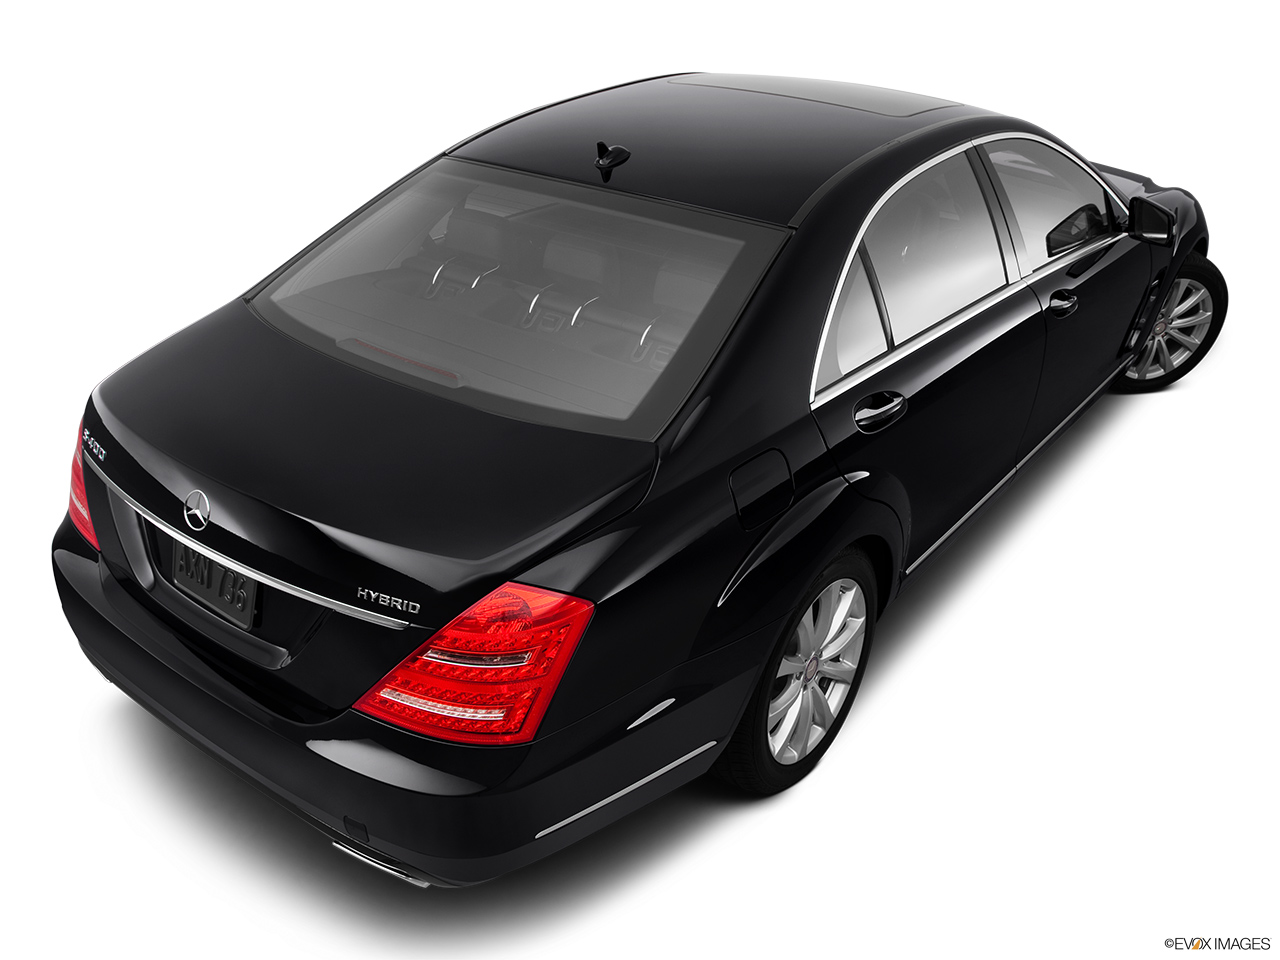 2012 Mercedes-Benz S-Class Hybrid S400 Rear 3/4 angle view.